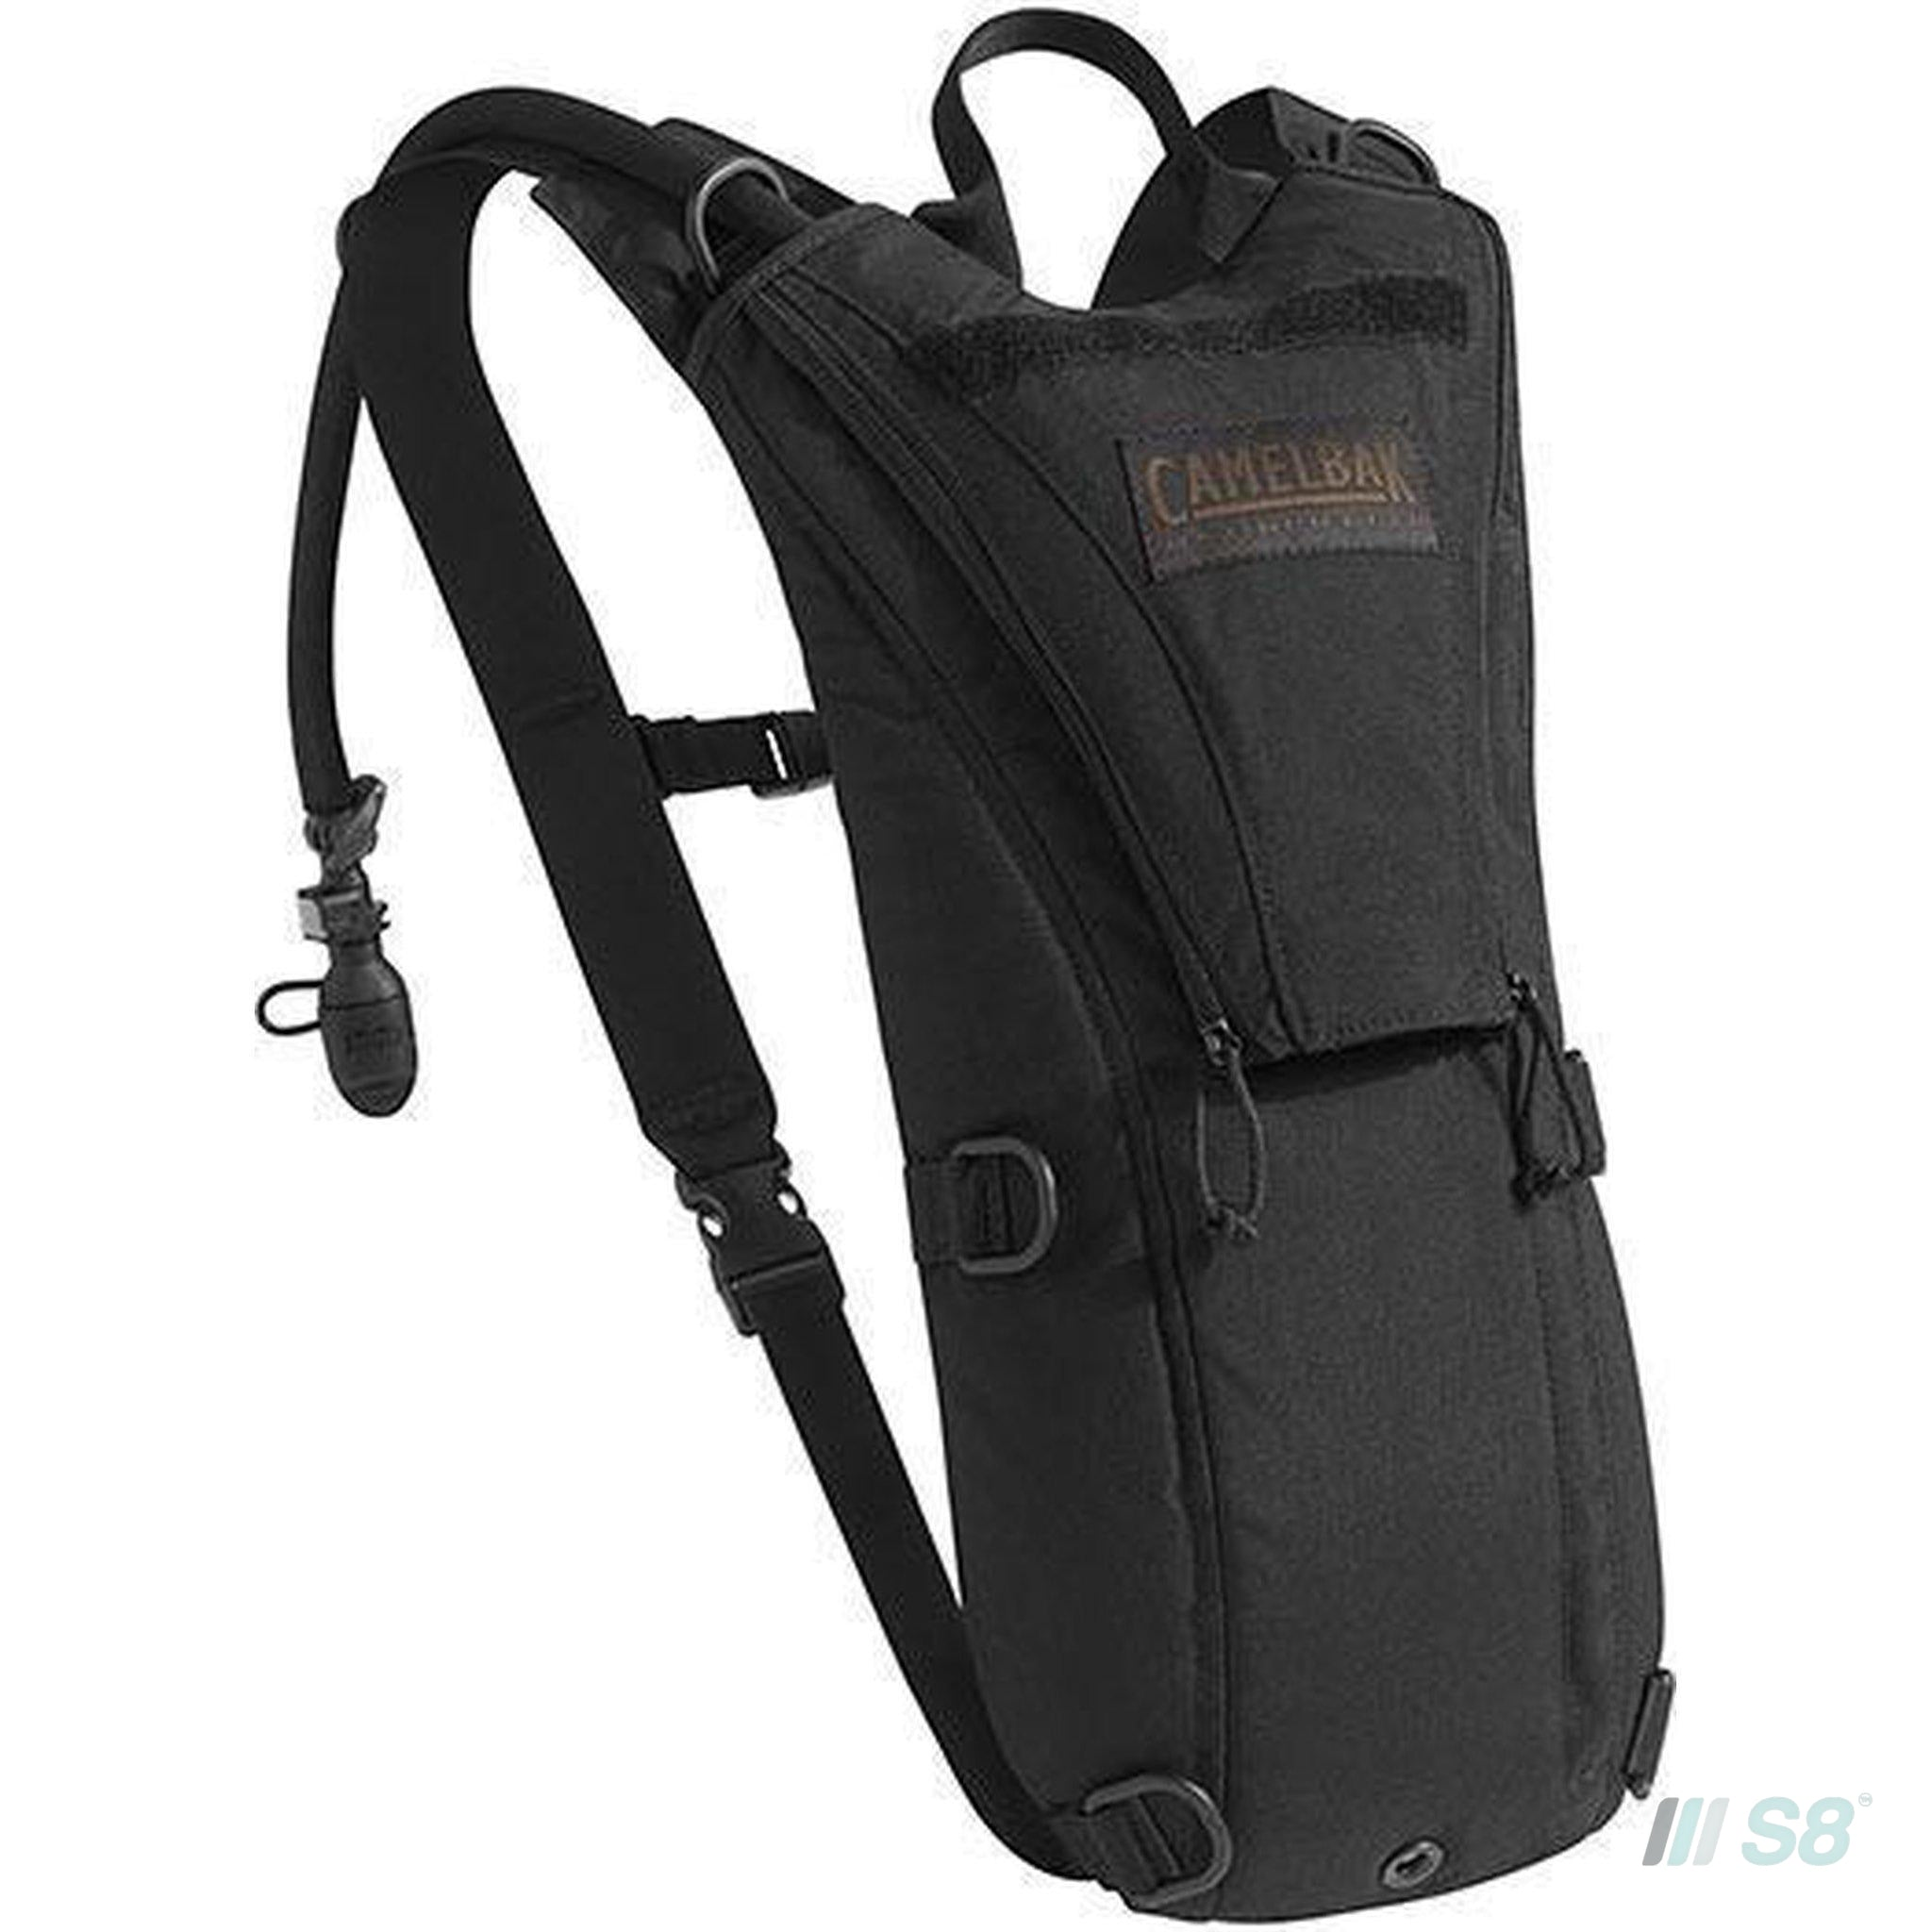 Camelbak Thermobak 3L Long Hydration Pack-Camelbak-S8 Products Group